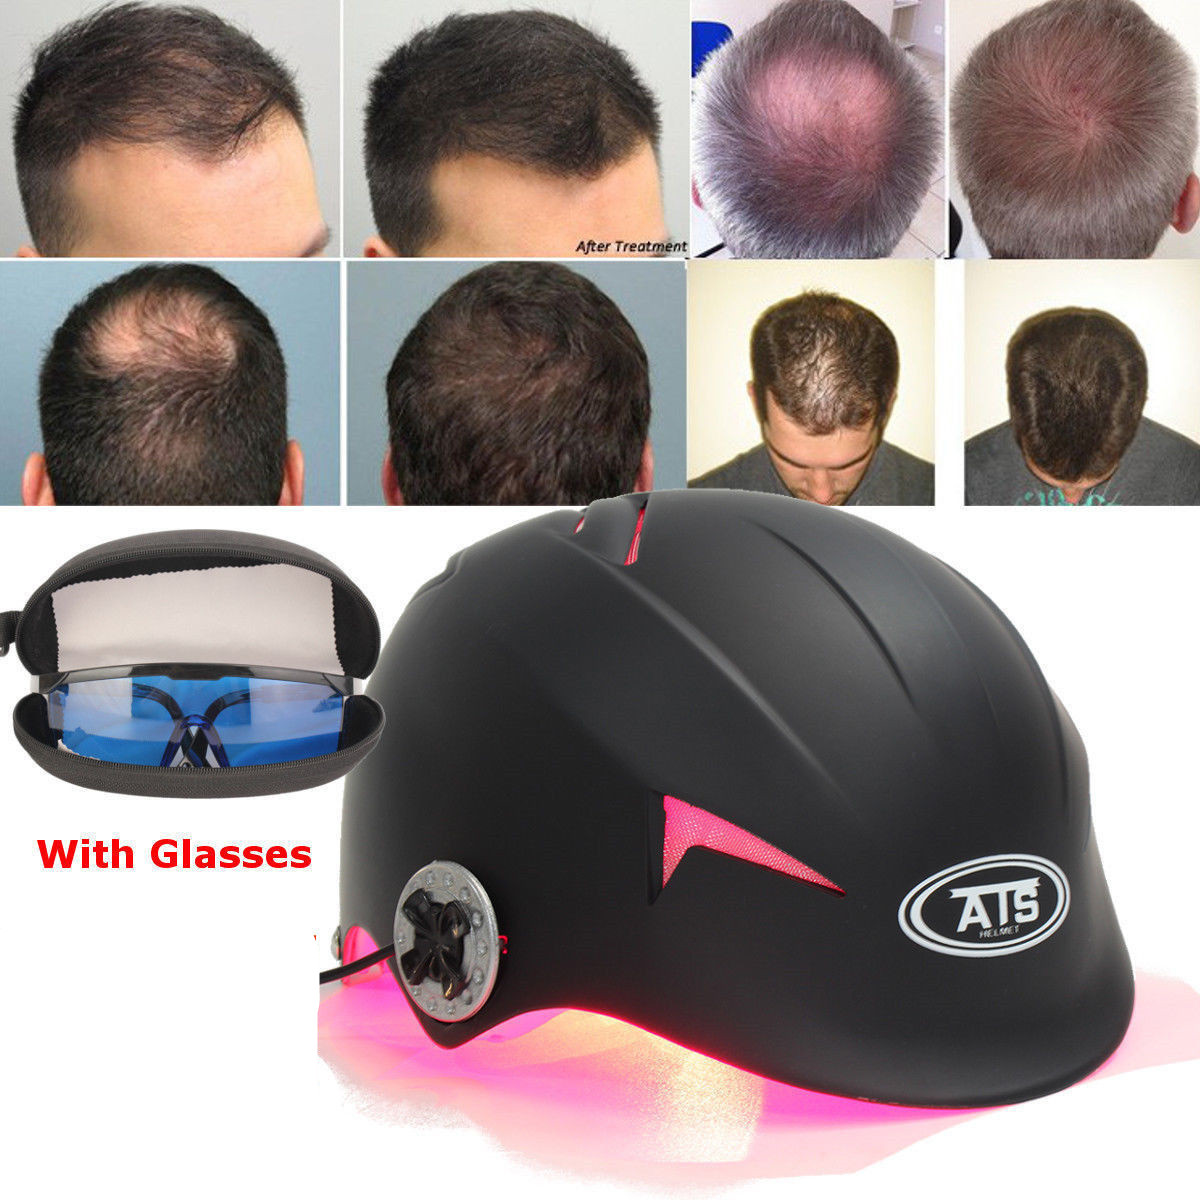 128 Diodes Laser Cap Hair Loss Treatment Hair Regrowth Promoter Building Fibers Cap Therapy Stimulate Hair Follicle Regeneration